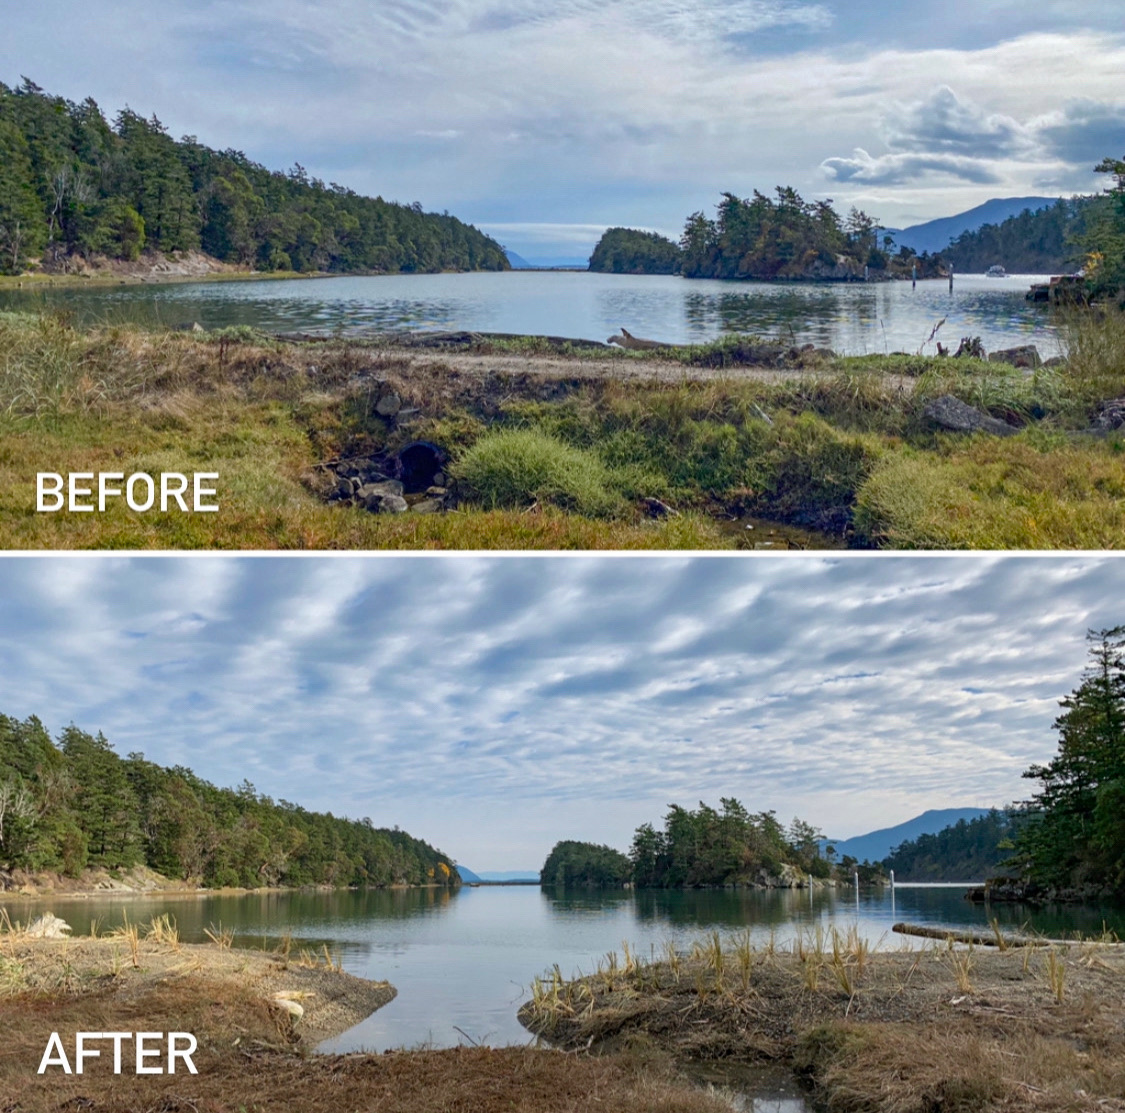 A causeway on Succia Island before and after restoration